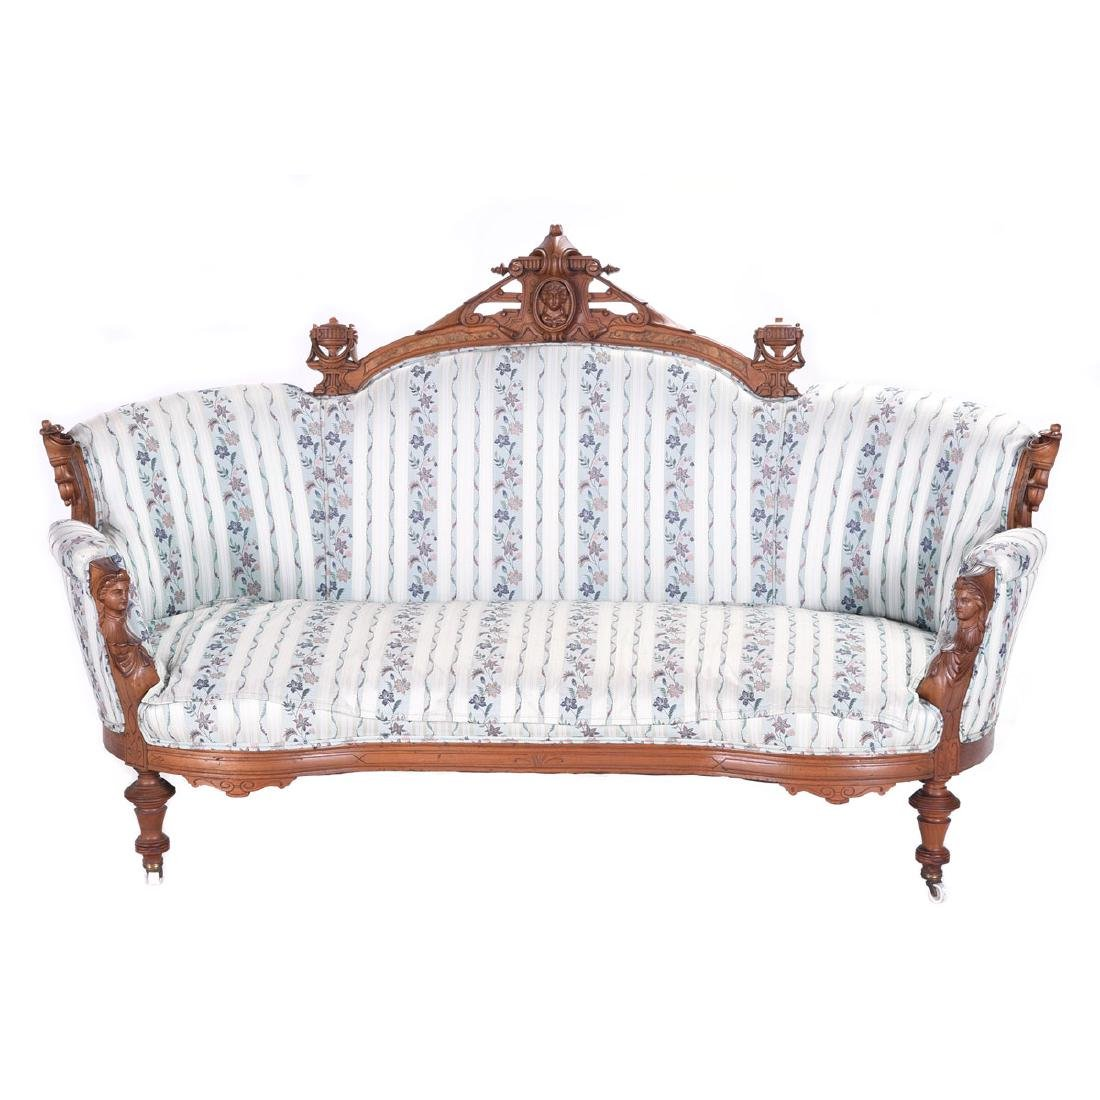 Renaissance Revival Walnut Parlor Settee, with Carved